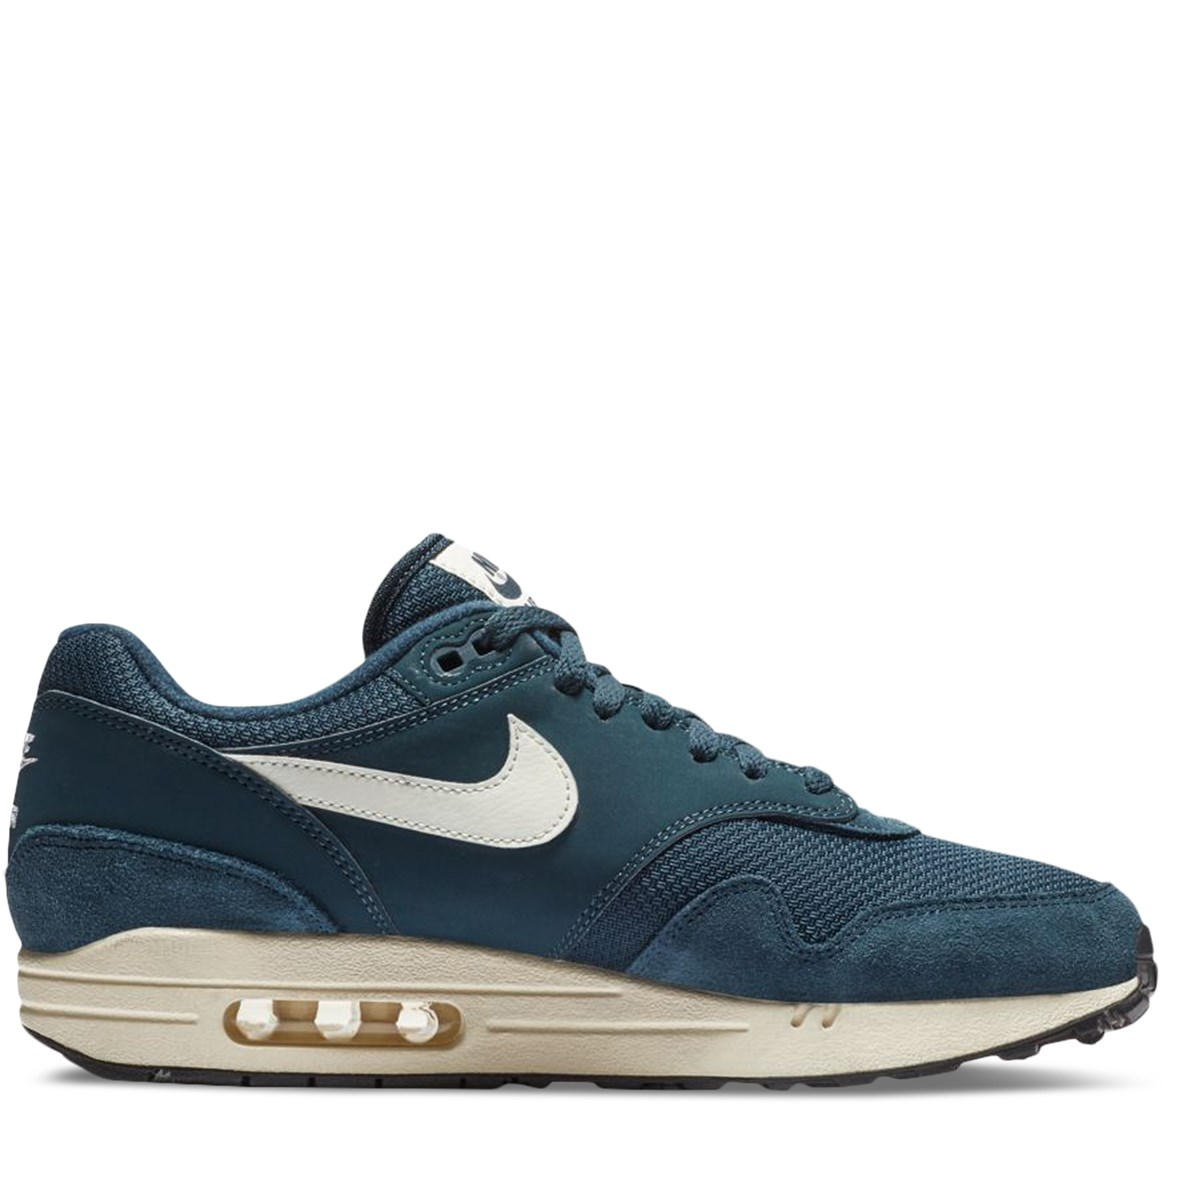 Men's Air Max 1 Sneaker in Navy